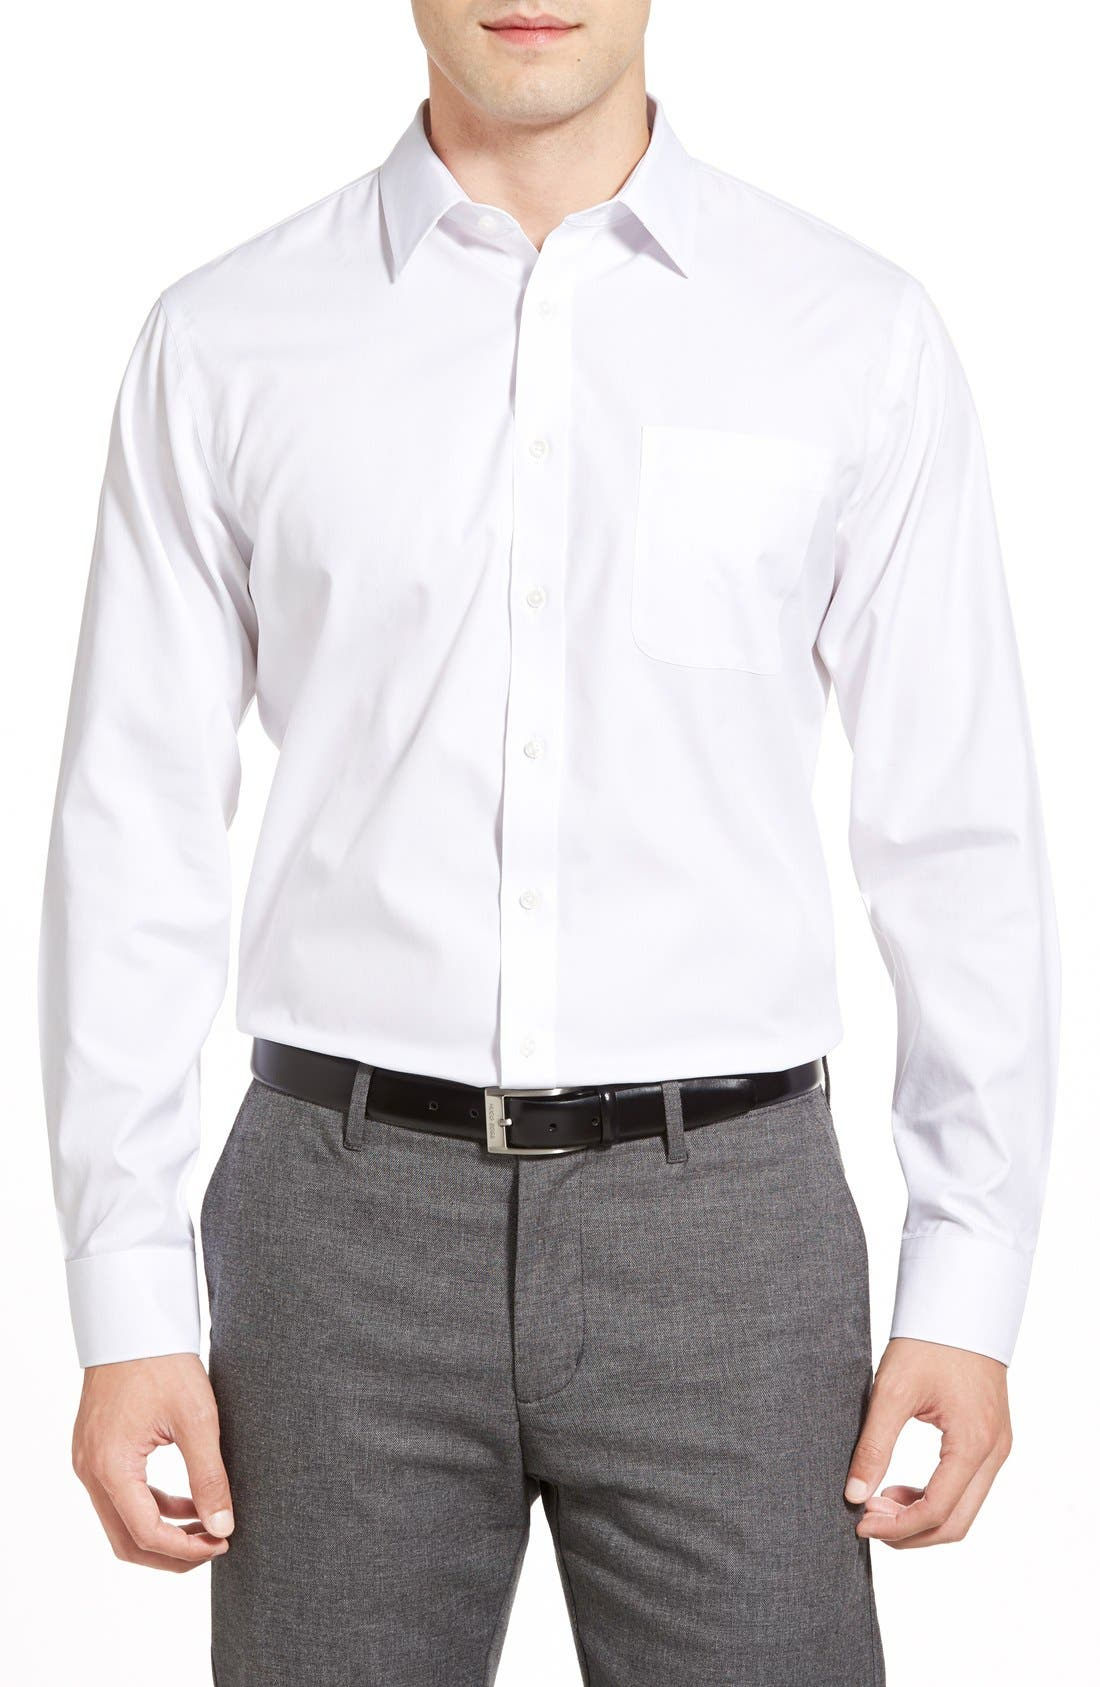 Alternate Image 2  - Nordstrom Men's Shop Smartcare™ Trim Fit Solid Dress Shirt